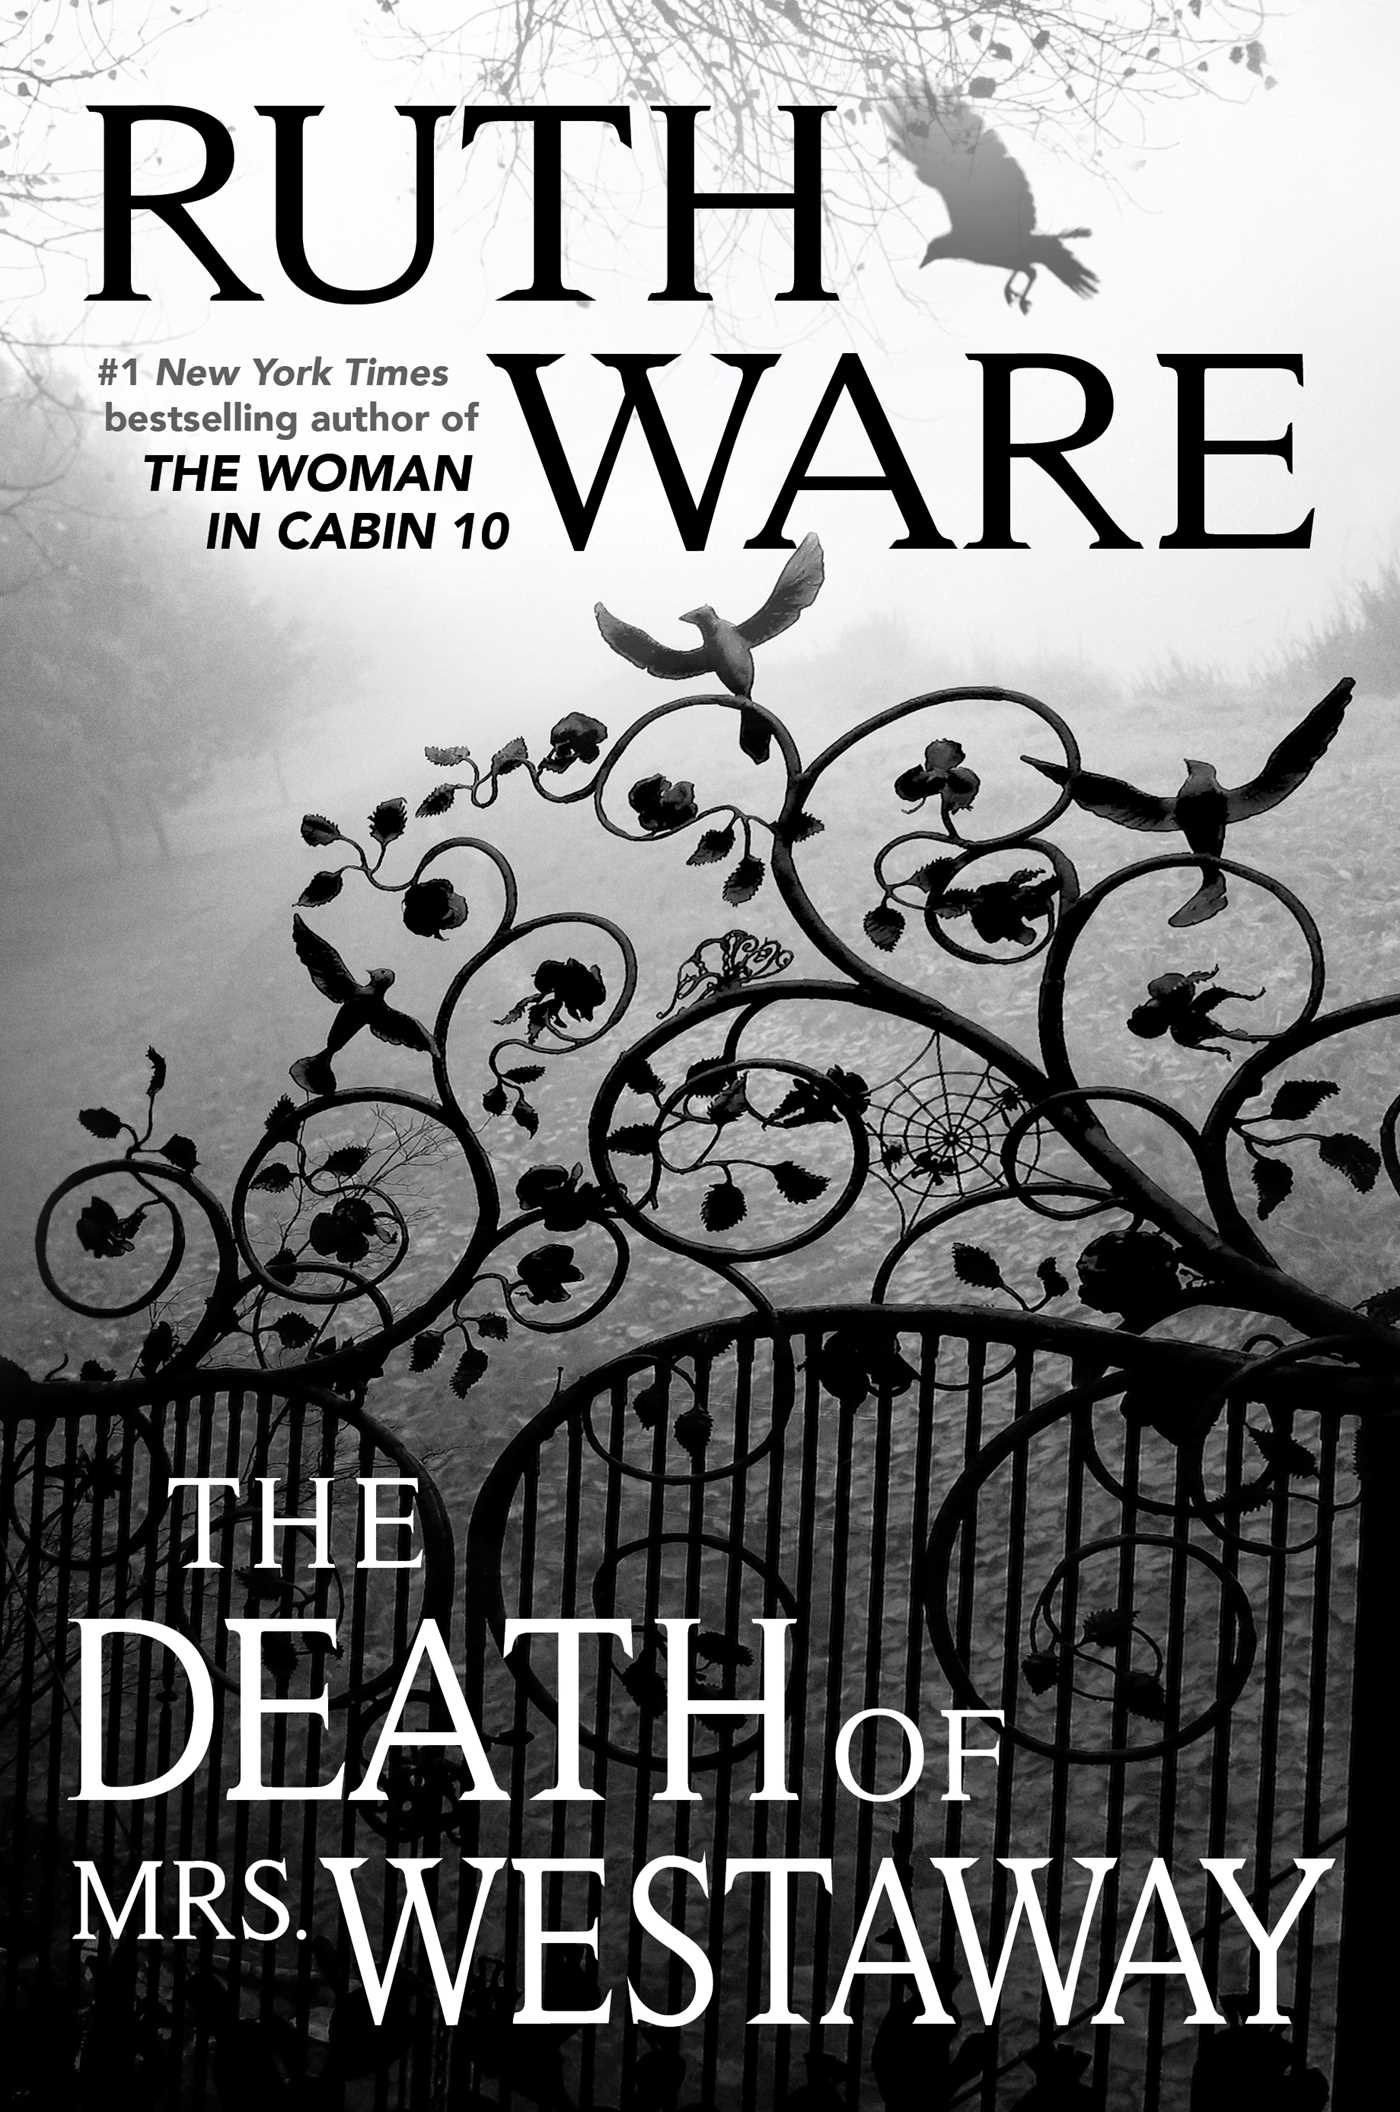 Death of Mrs Westaway by Ruth Ware